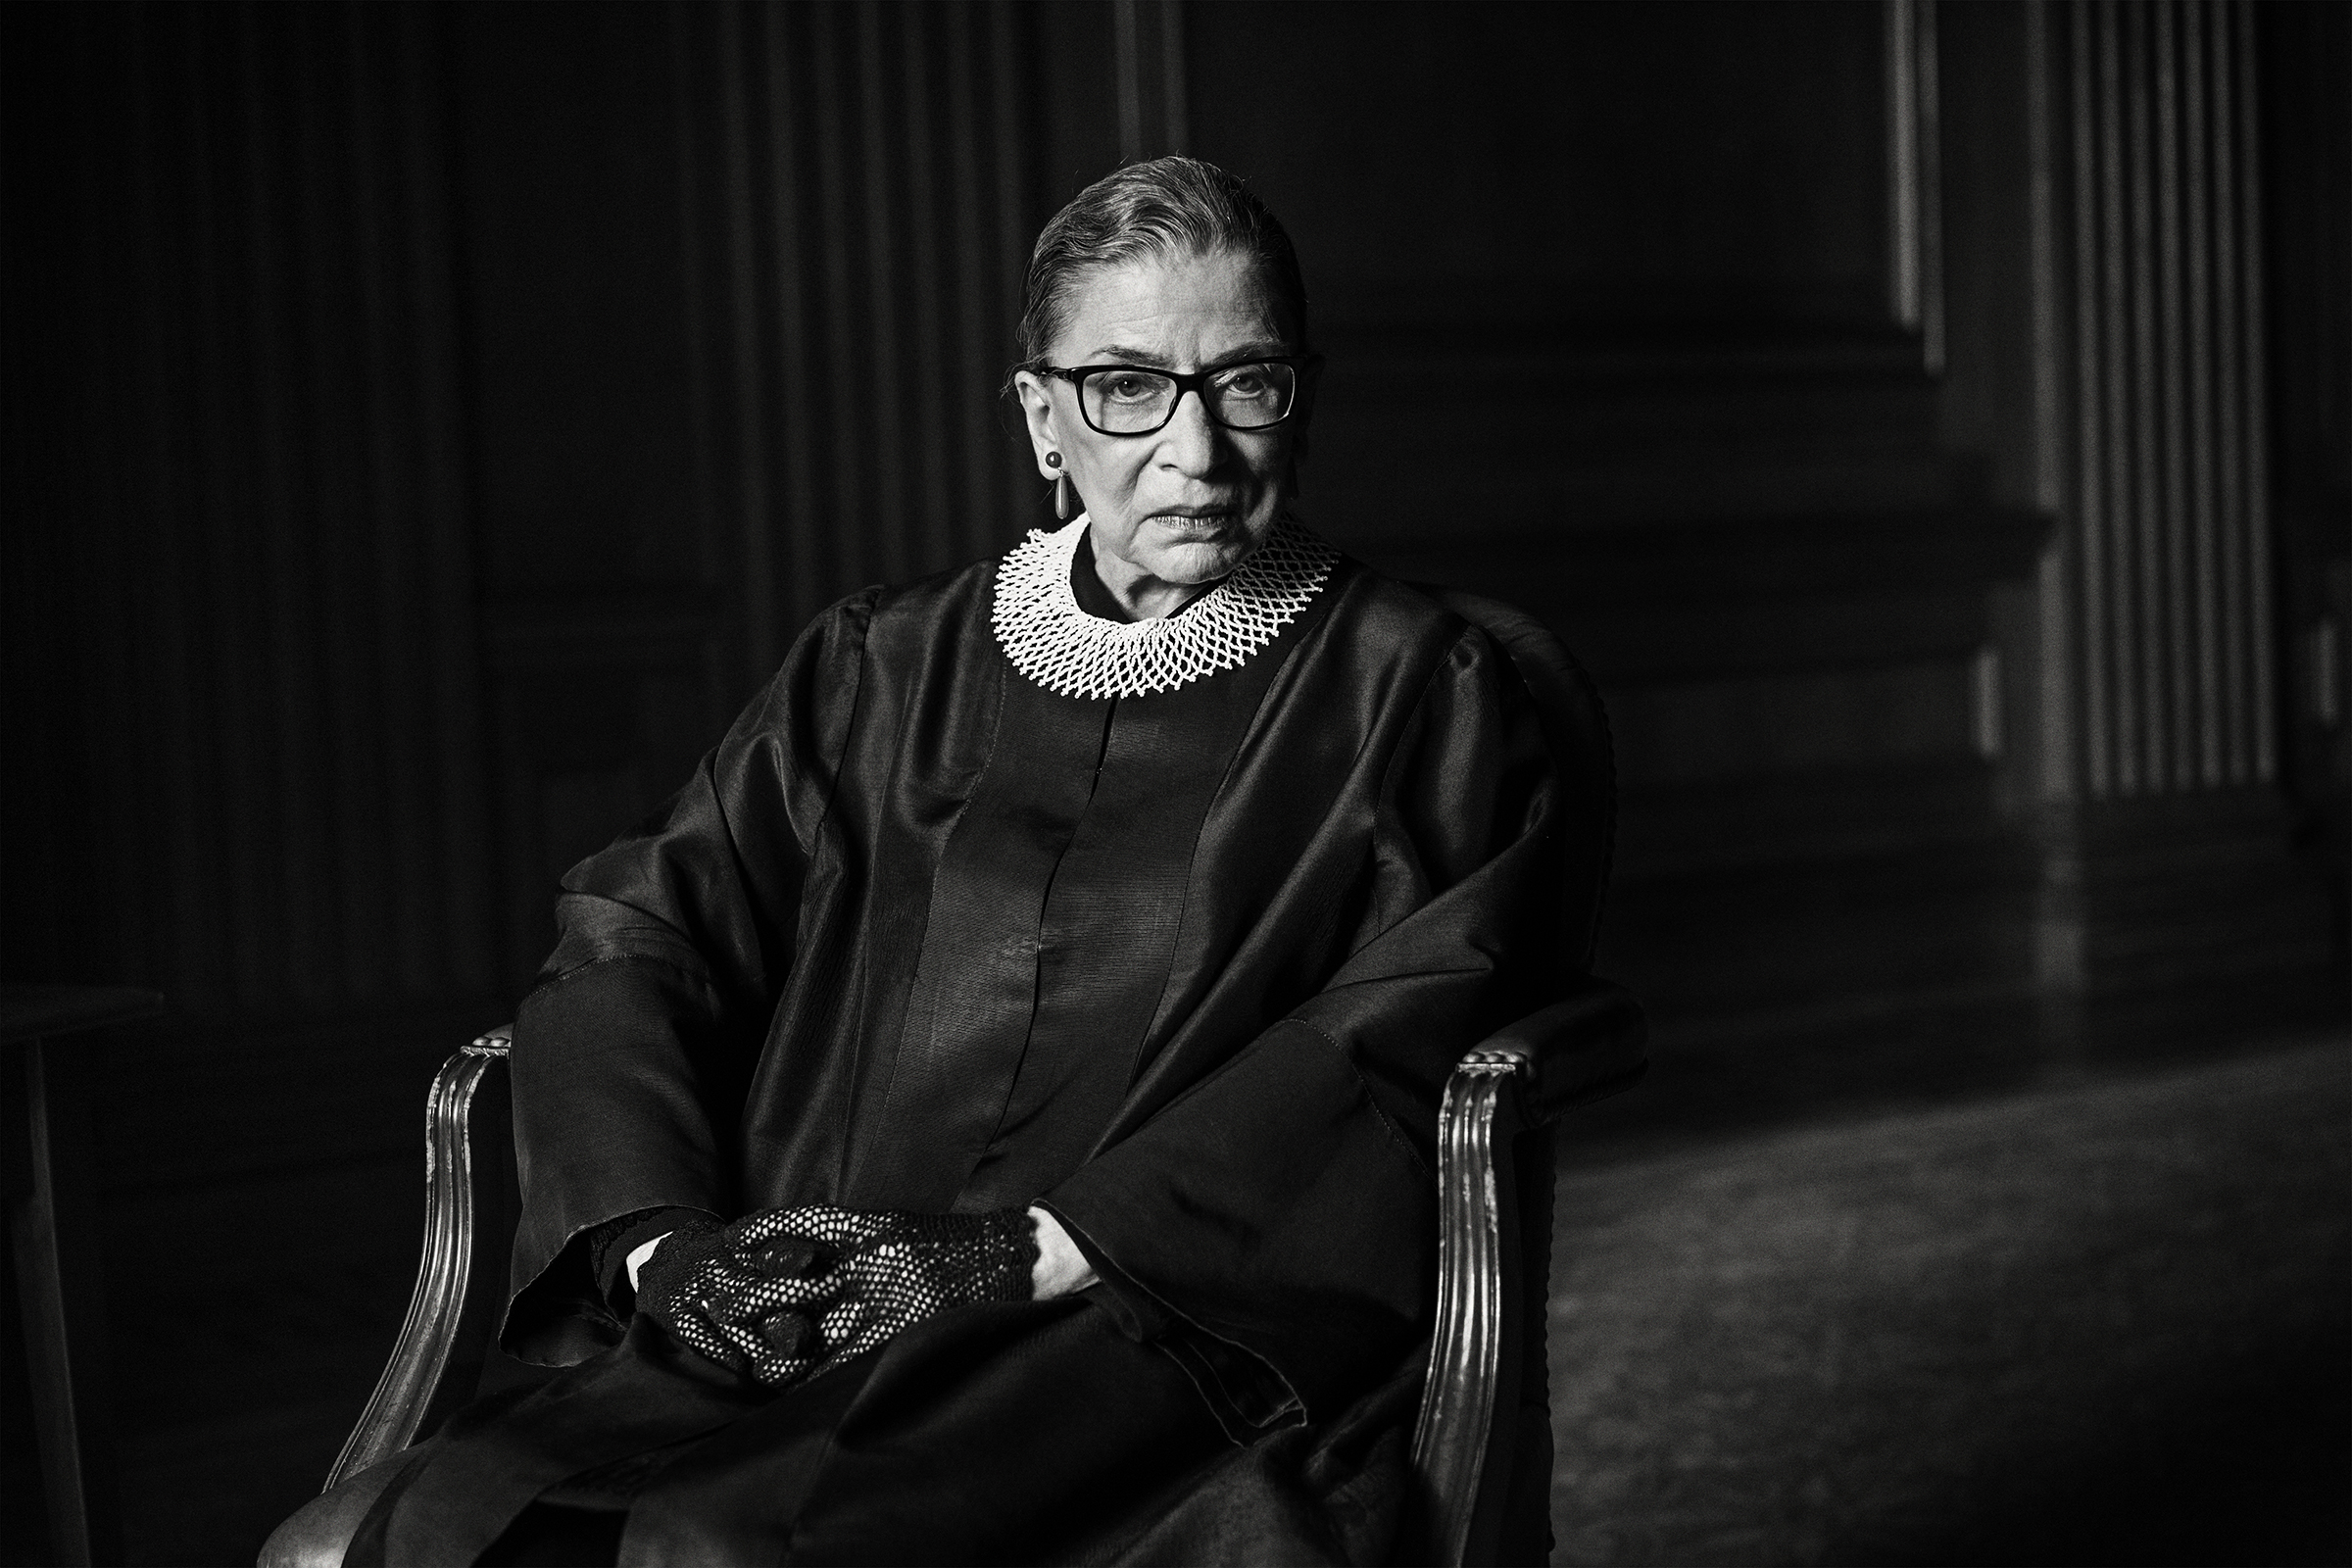 Supreme Court Associate Justice Ruth Bader Ginsburg, photographed in 2015.